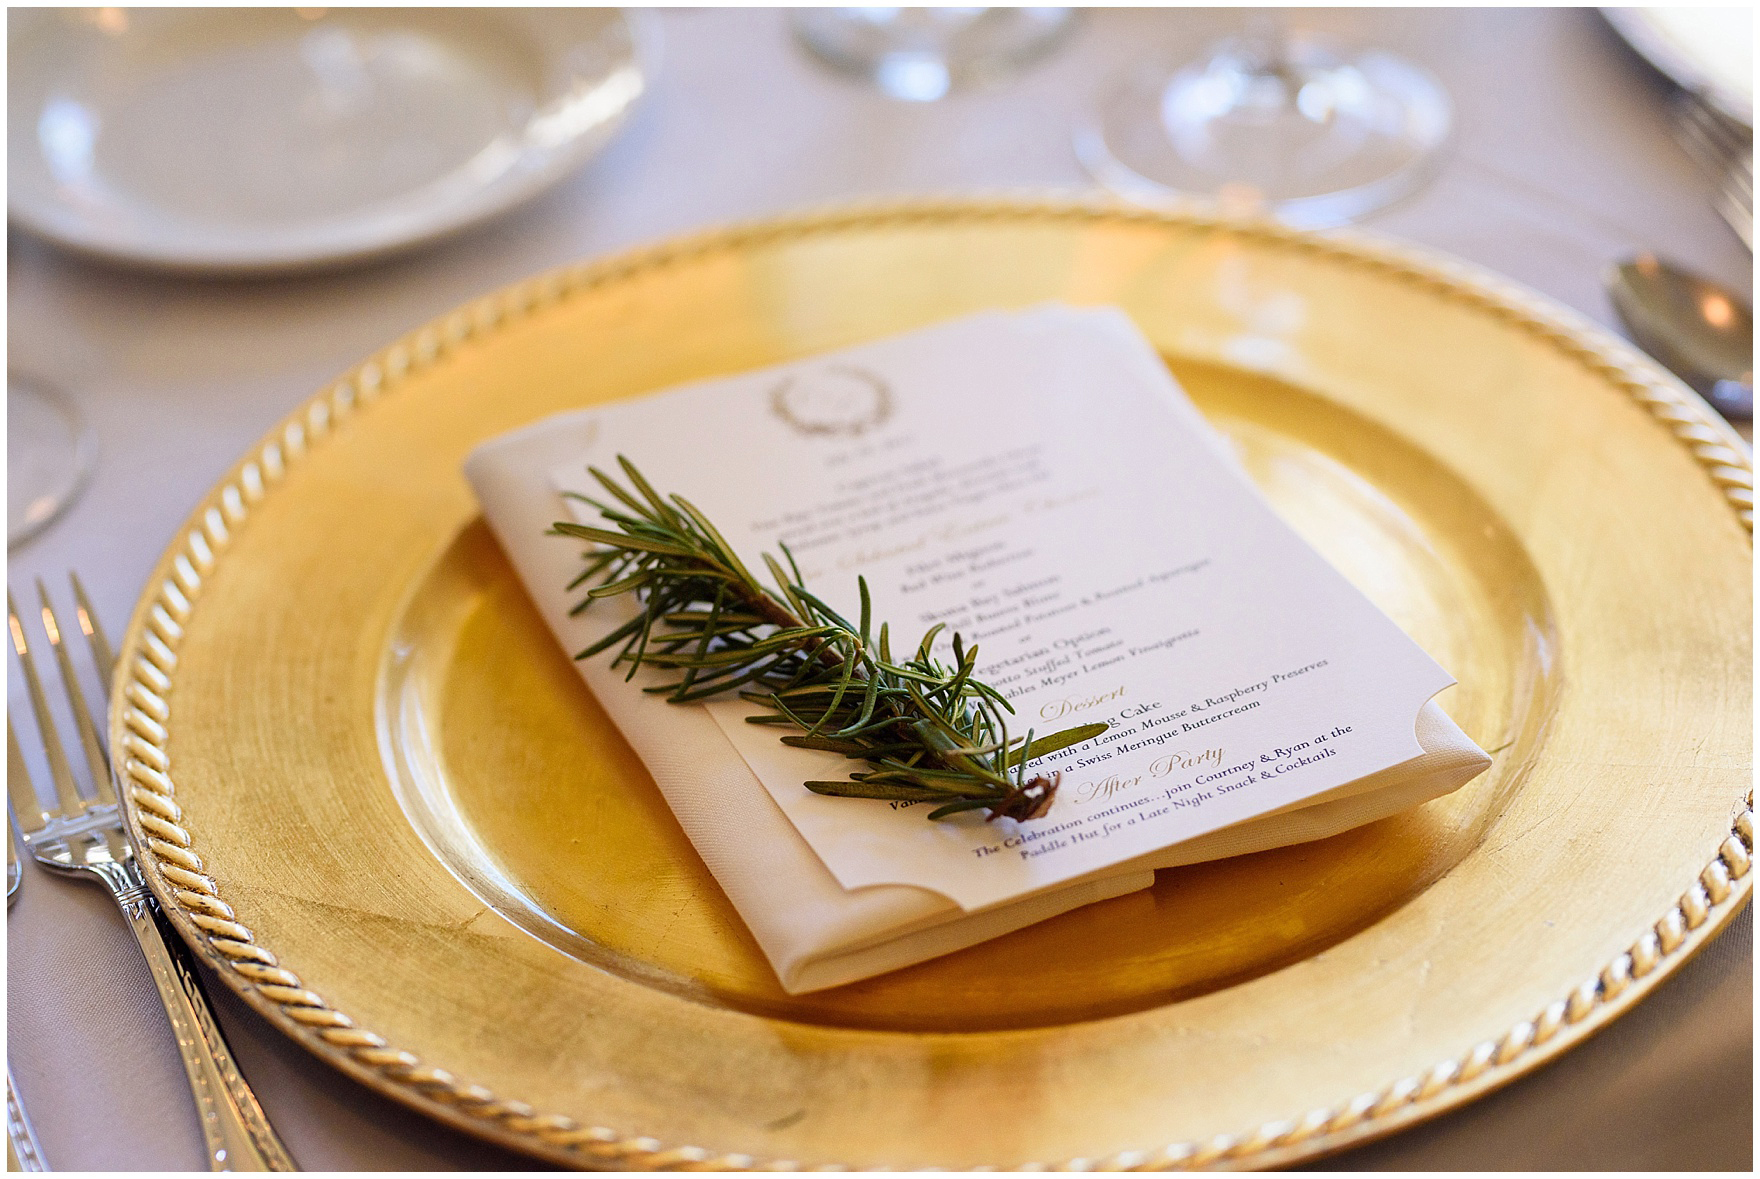 Menus on gold chargers are adorned with sprigs of rosemary during a Butterfield Country Club wedding.